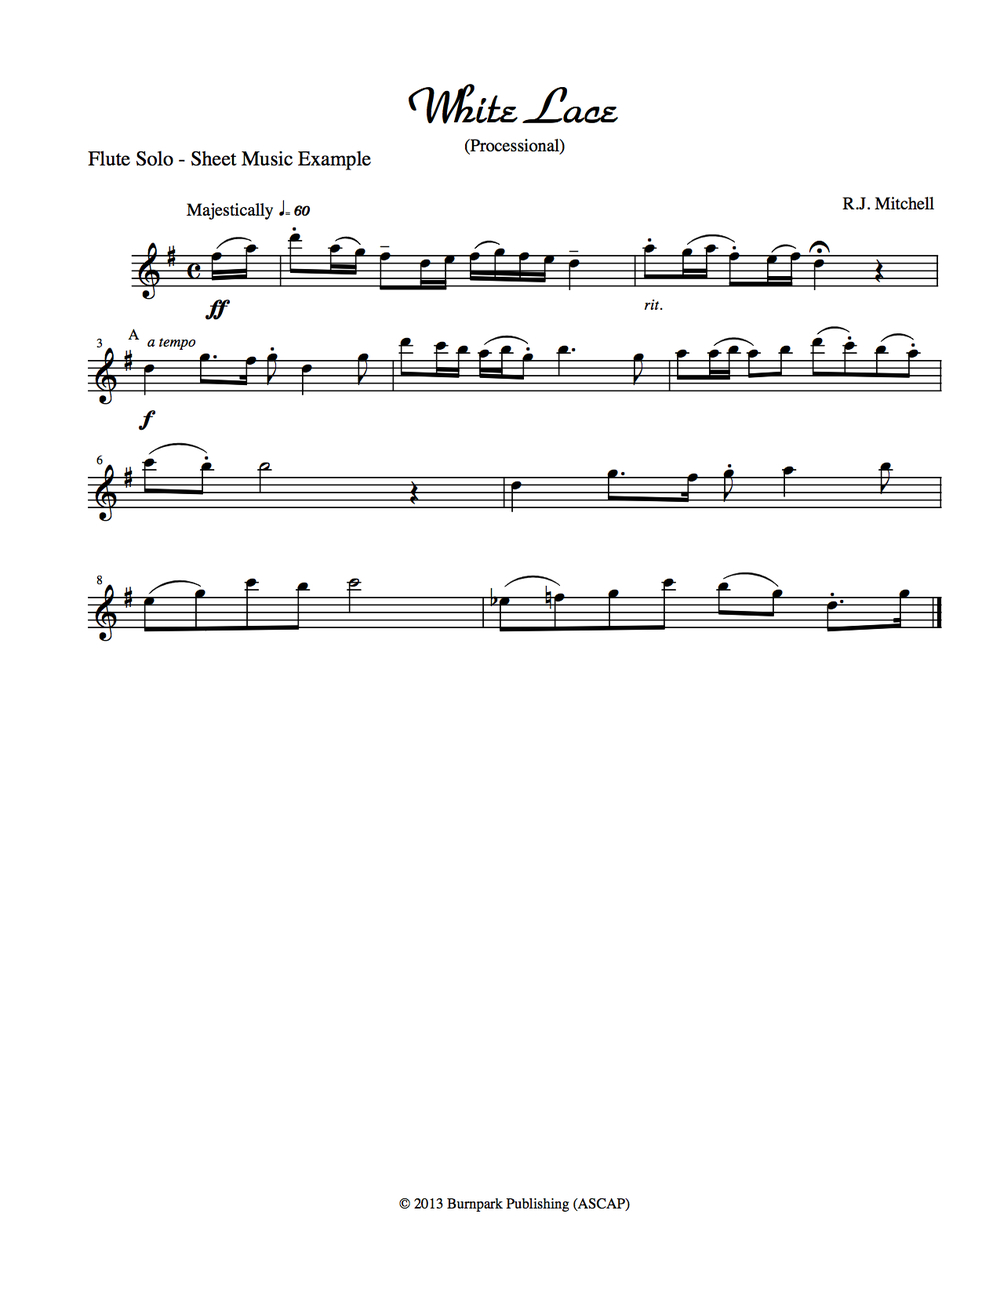 Flute Solo Sheet Music Example